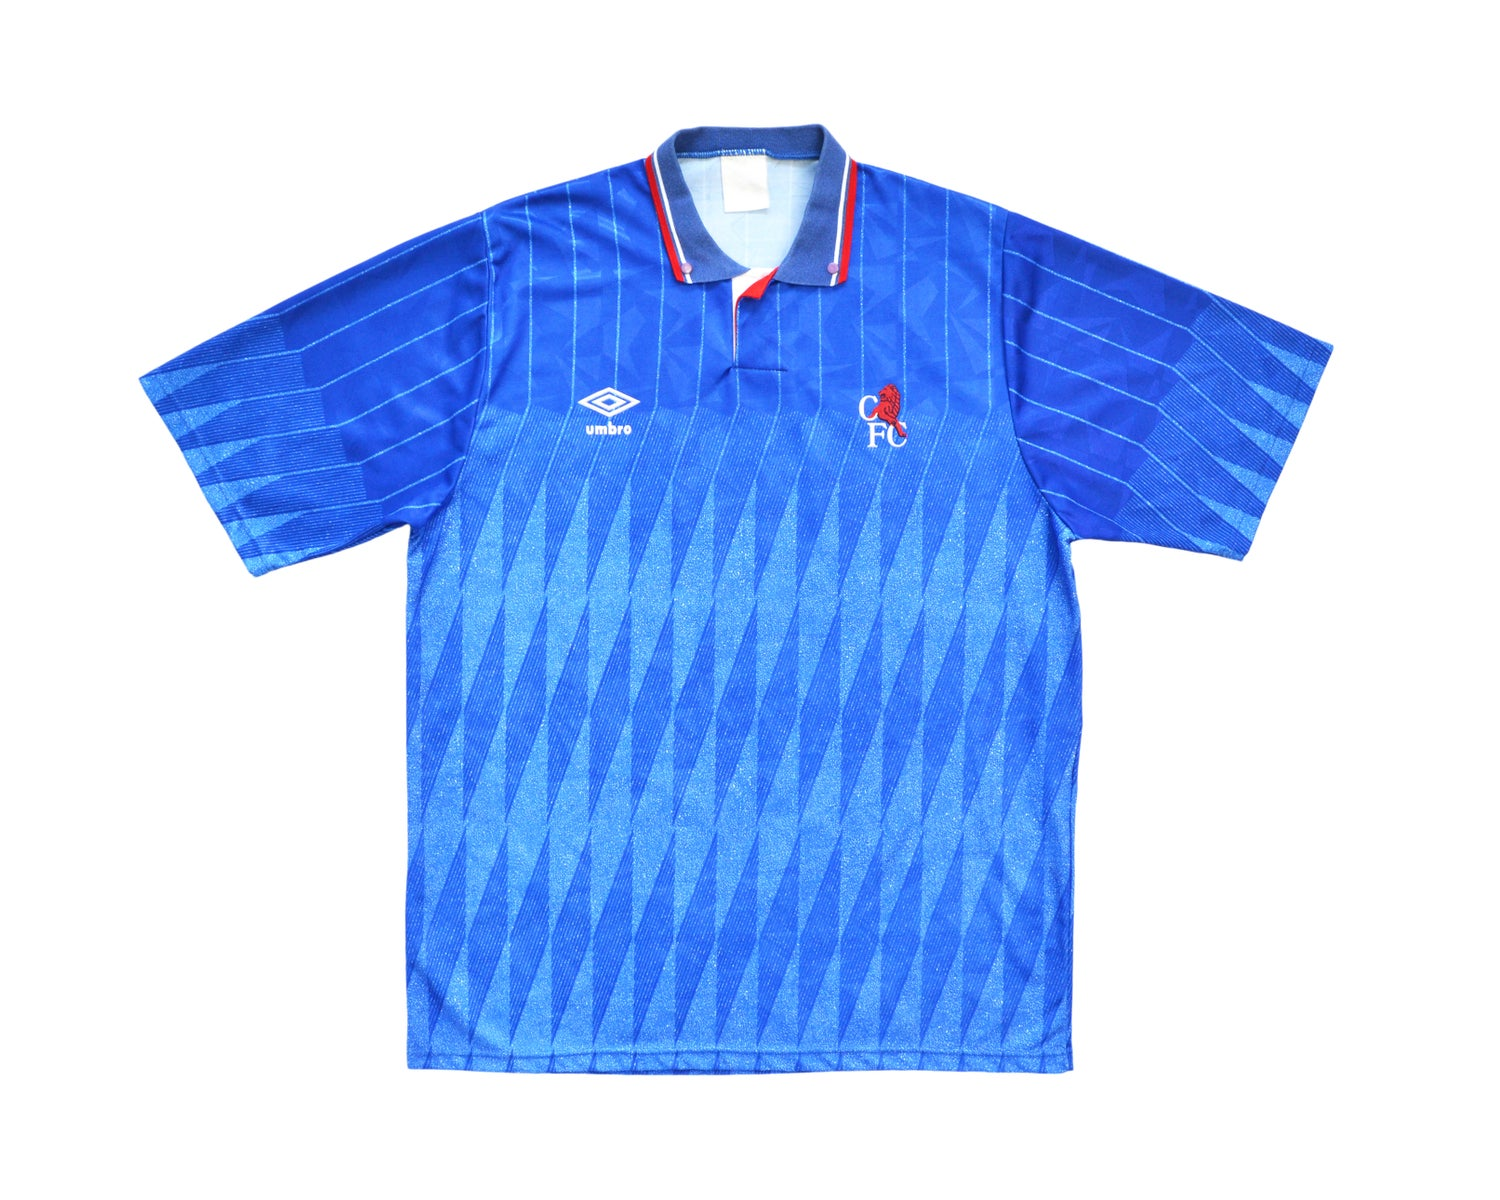 Image of 1989-91 Umbro Chelsea Home Shirt XL